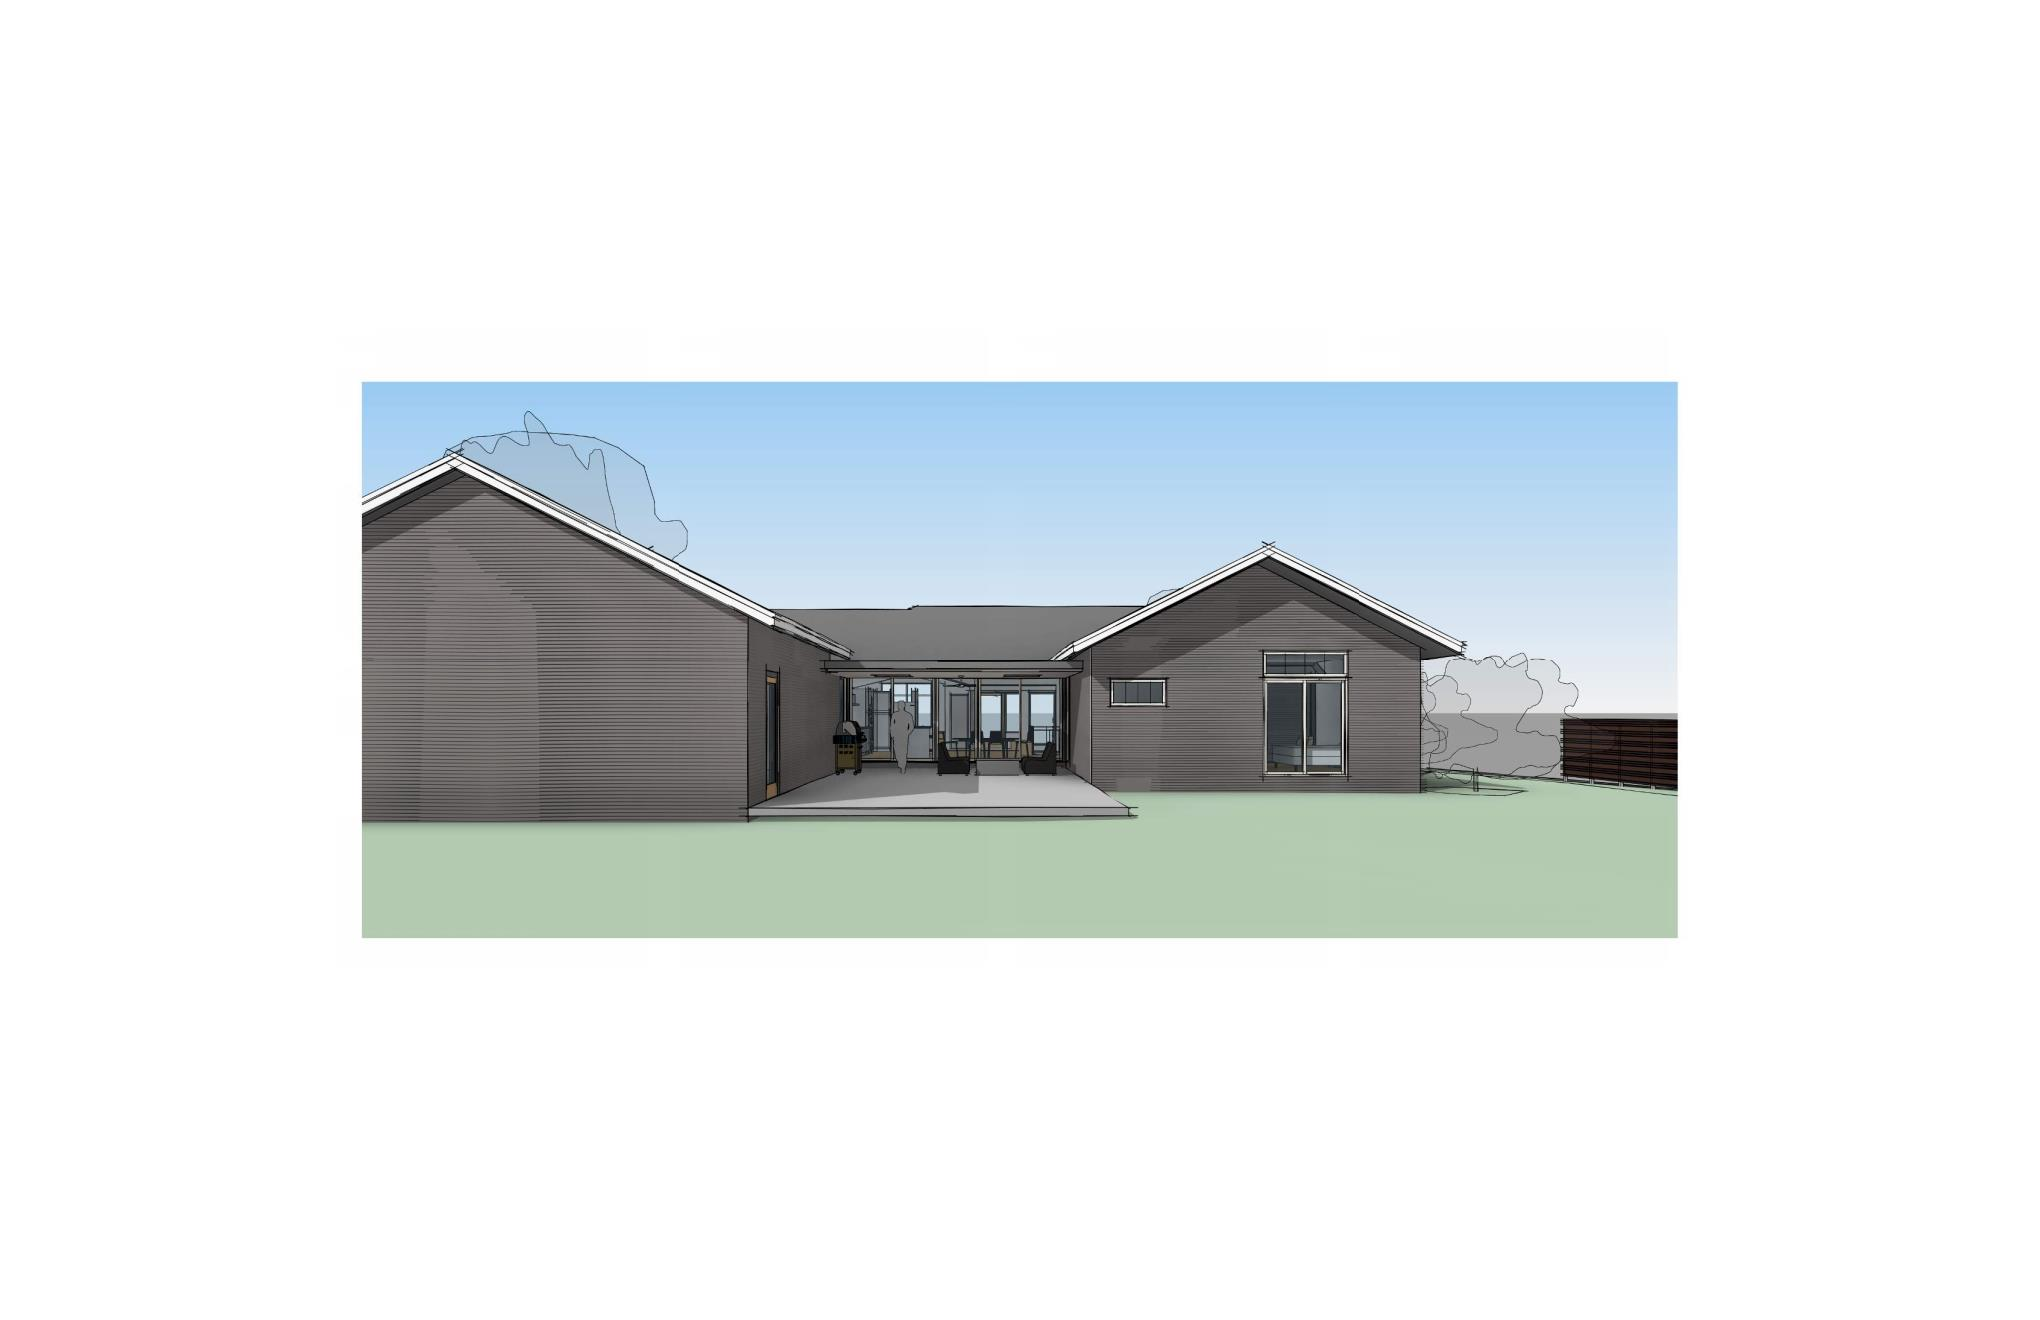 H-D Farmhouse Modern 3D Views Page 004.jpg